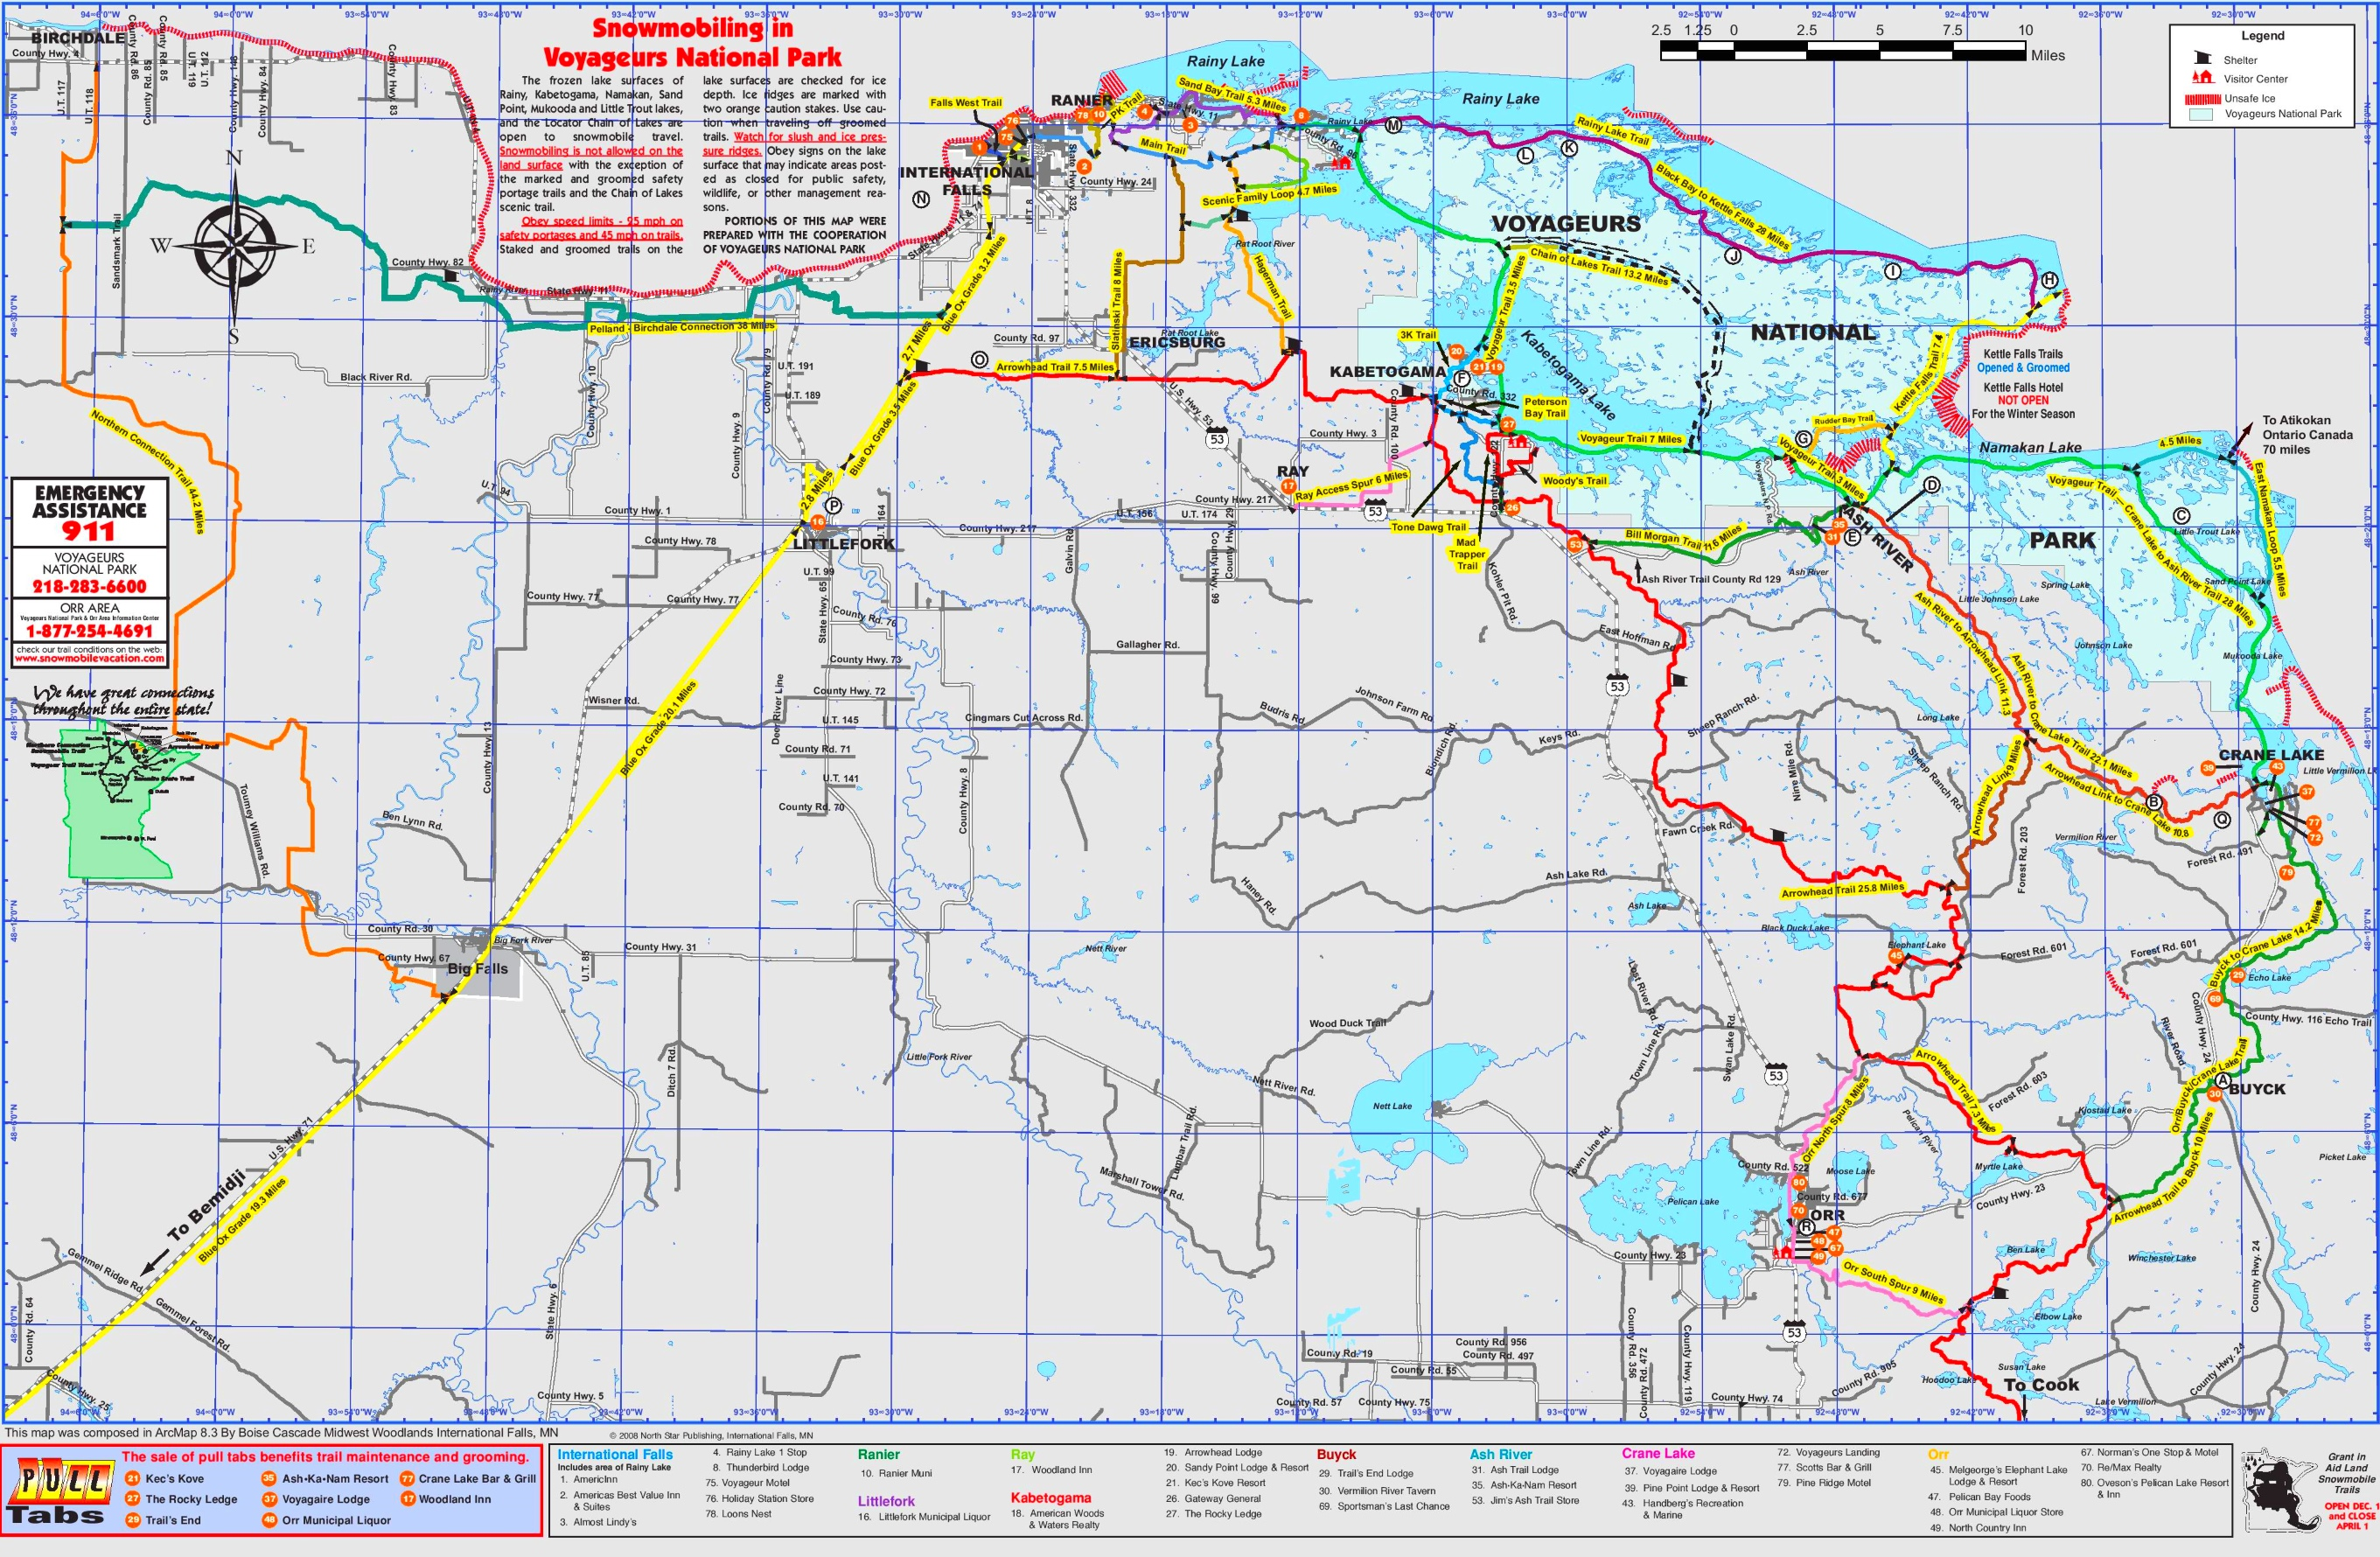 Voyageurs national park snowmobile trails map voyageurs national park snowmobile trails map publicscrutiny Image collections